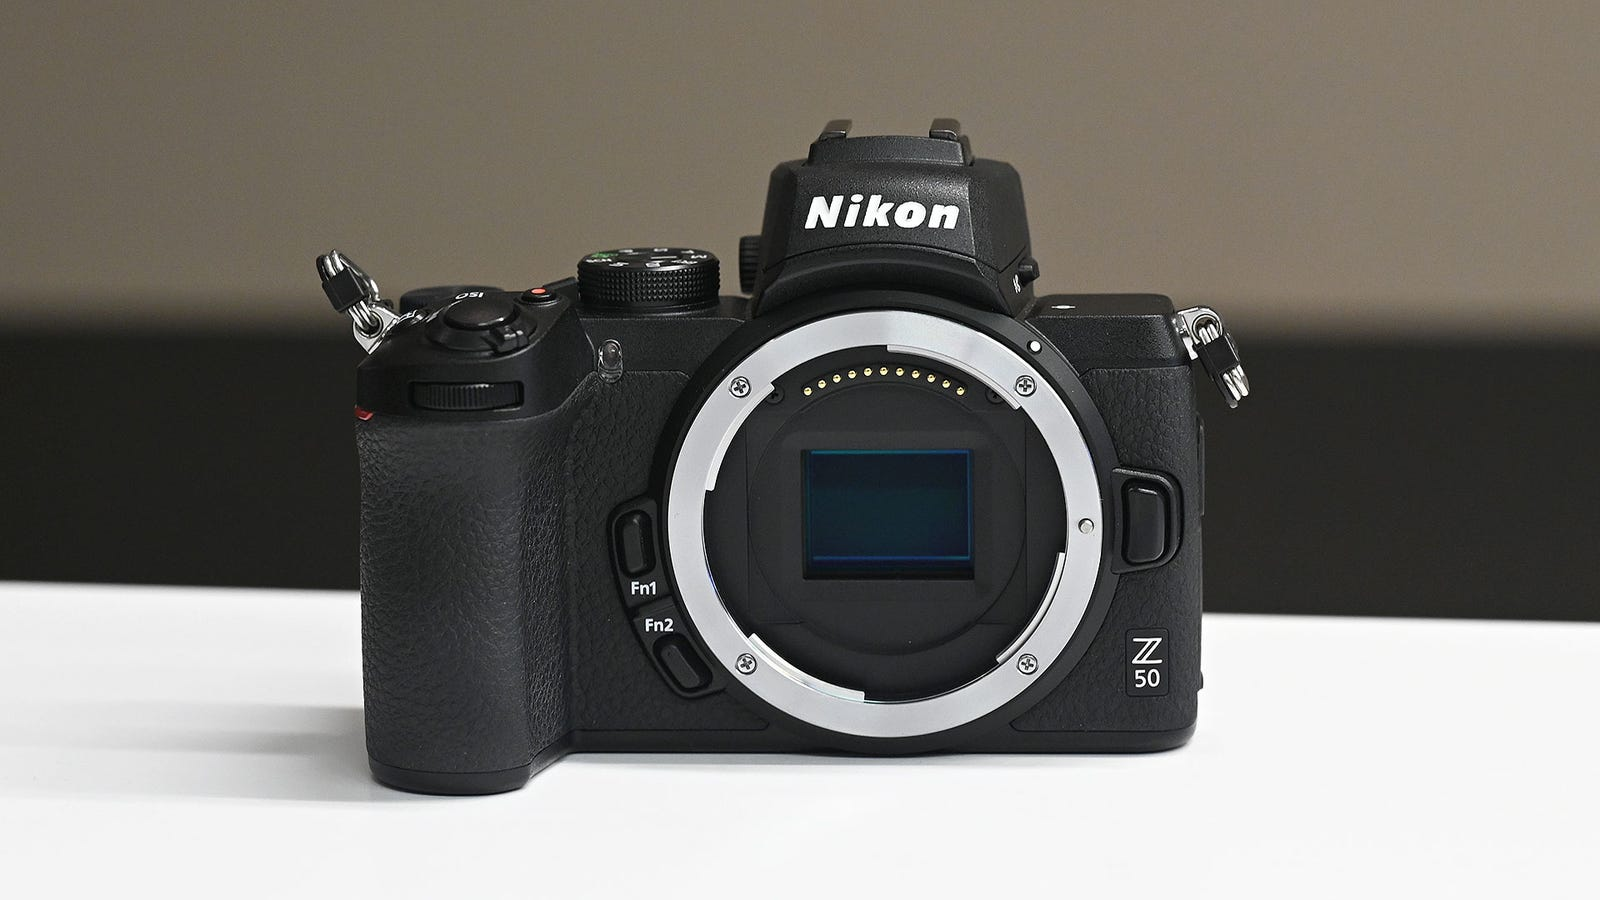 Unlike the Nikon Z6/Z7, the Z50 features a smaller 20.9-MP DX-sized sensor.